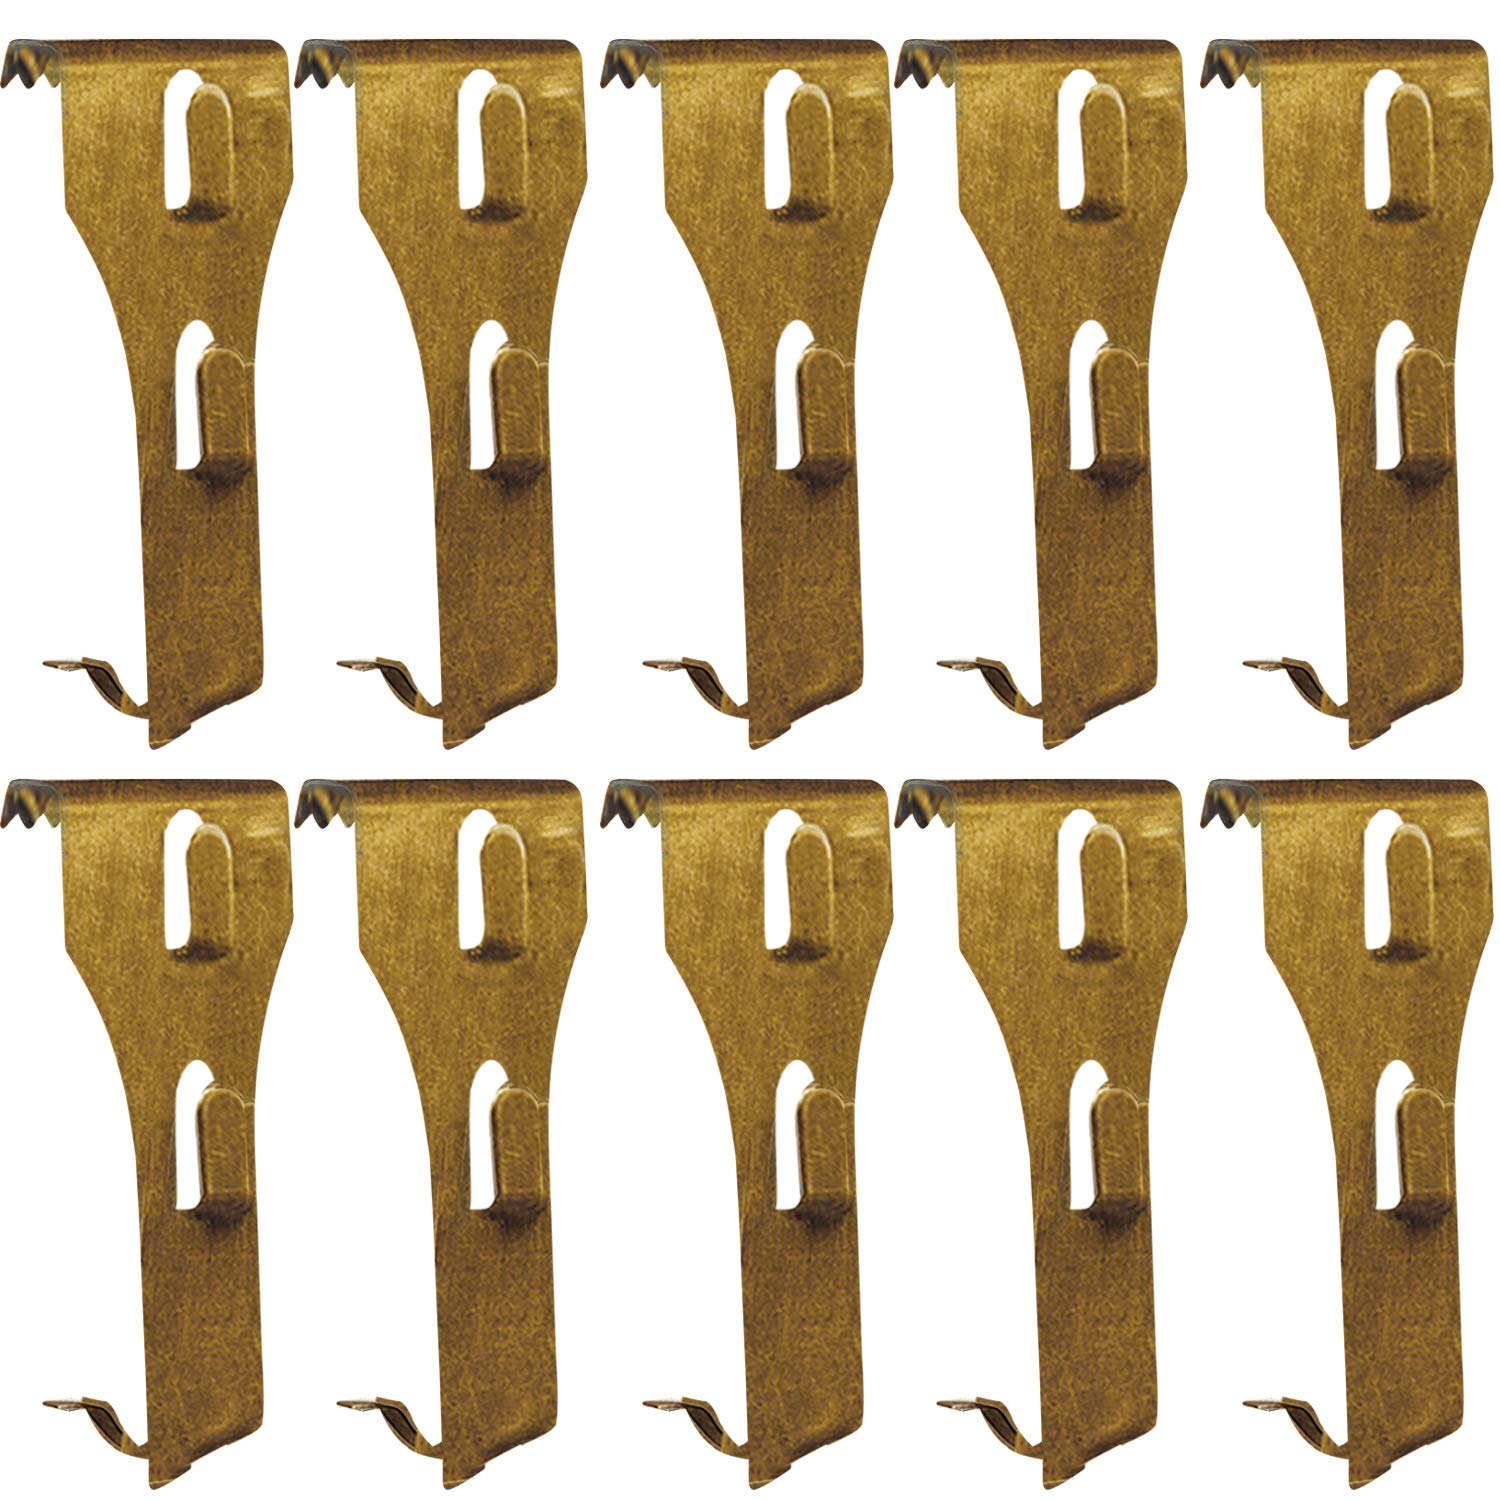 Metal Brick Clips Fastener 10 Pack Bulk Brick Wall Hooks Hanger for Garland Lights Pictures Hanging - Fits Brick 2-1/4 to 2-3/8 inch in Height